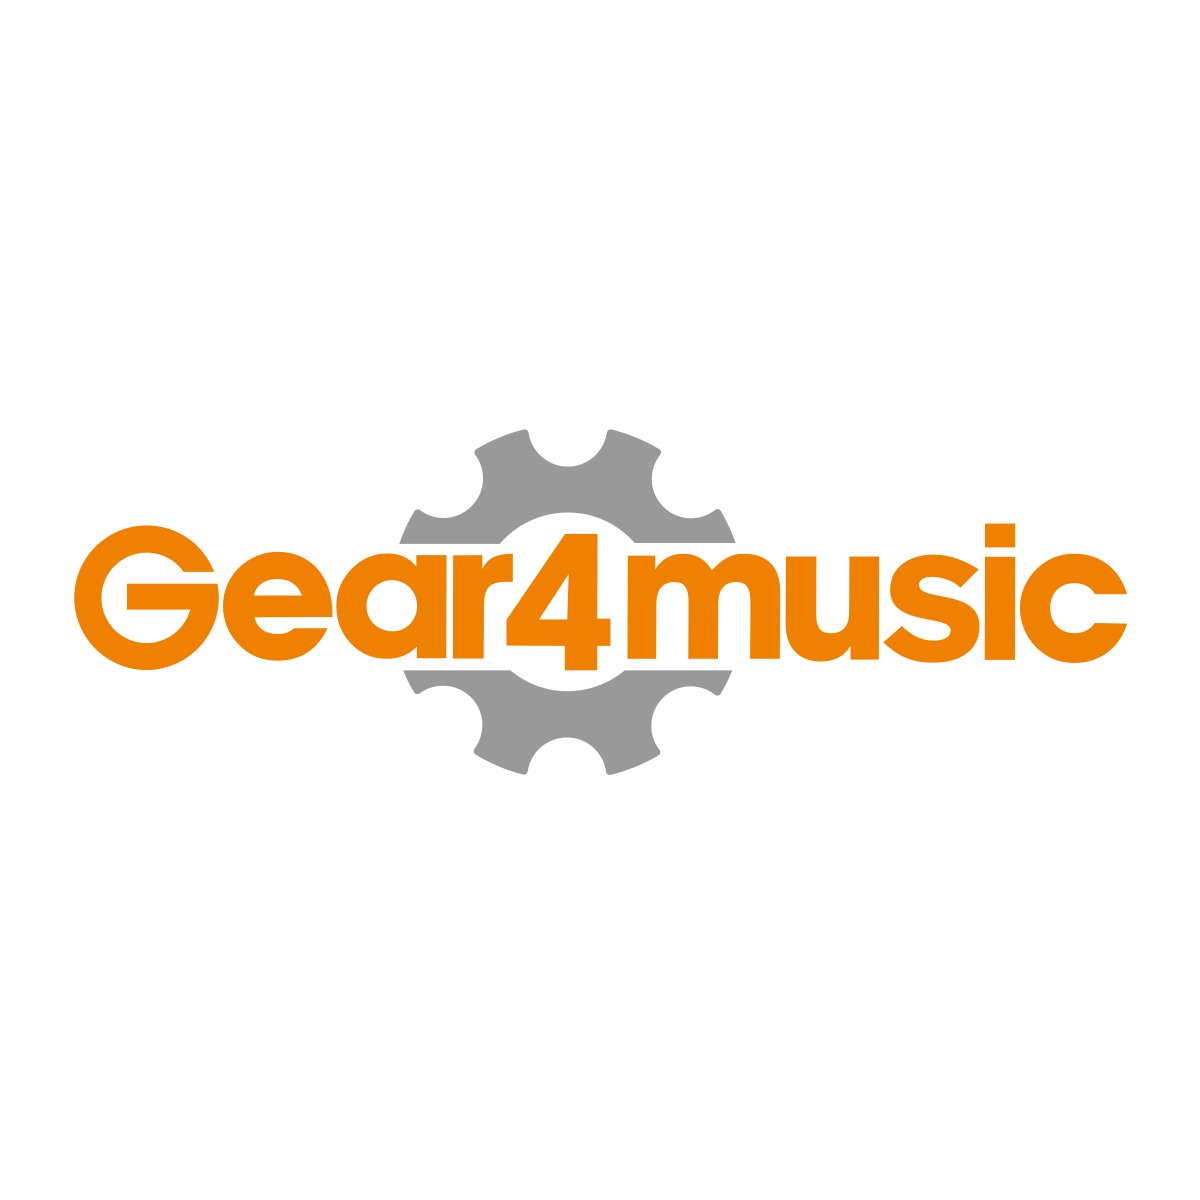 II de LA Guitarra Gear4music, Natural